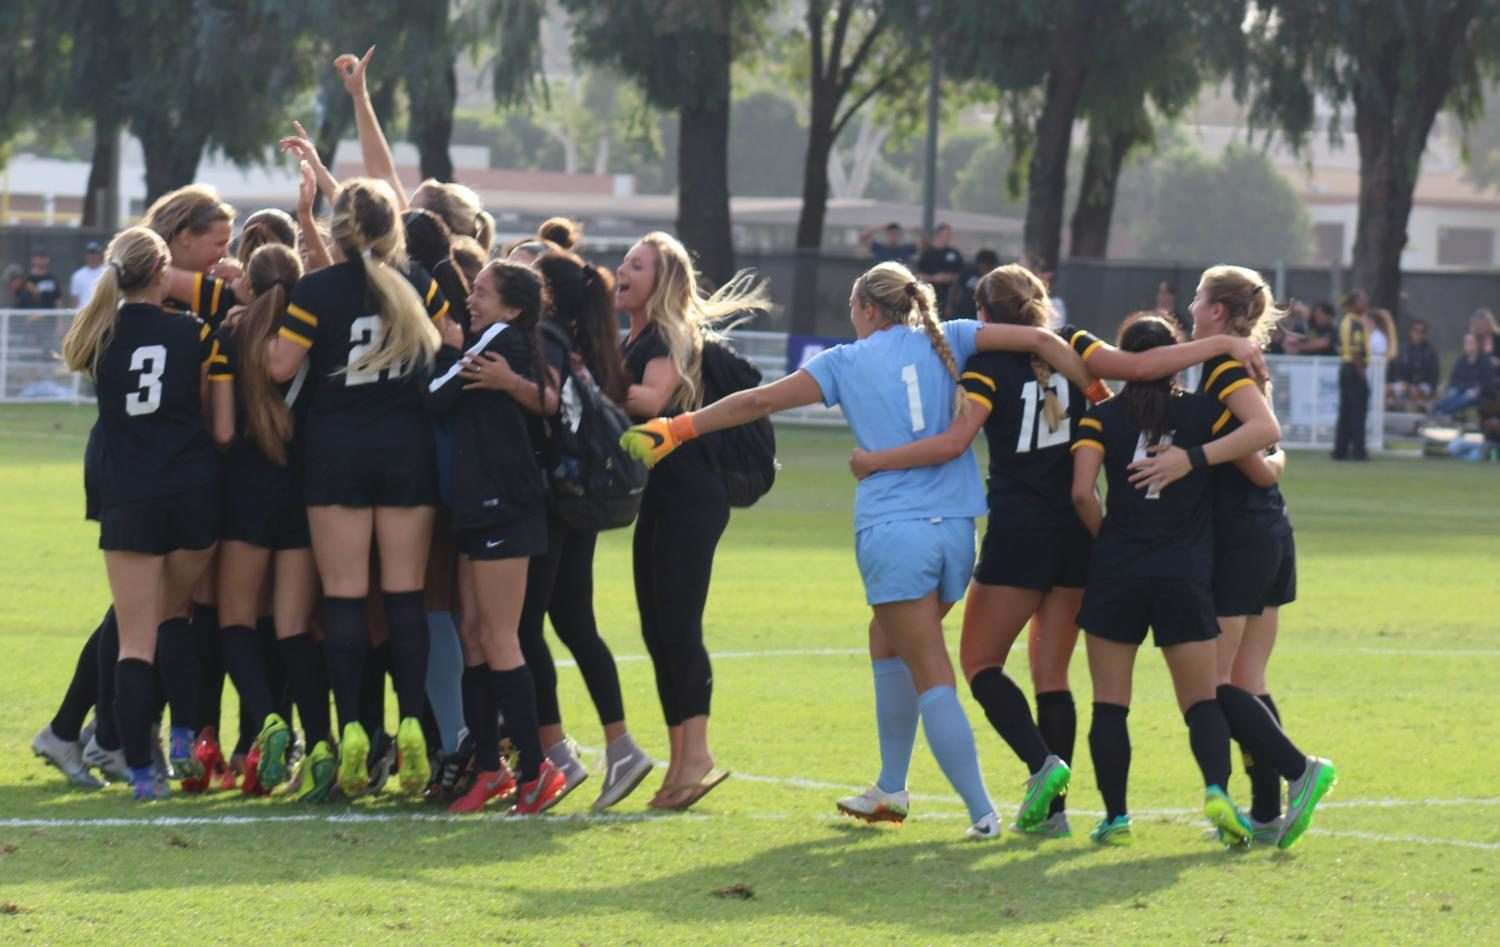 .@LBSUSoccer has released their schedule for the upcoming 2017 season. #LBSU #Sports #Soccer https://t.co/oAbjjZ0Ehn https://t.co/c9QqIuz0RK